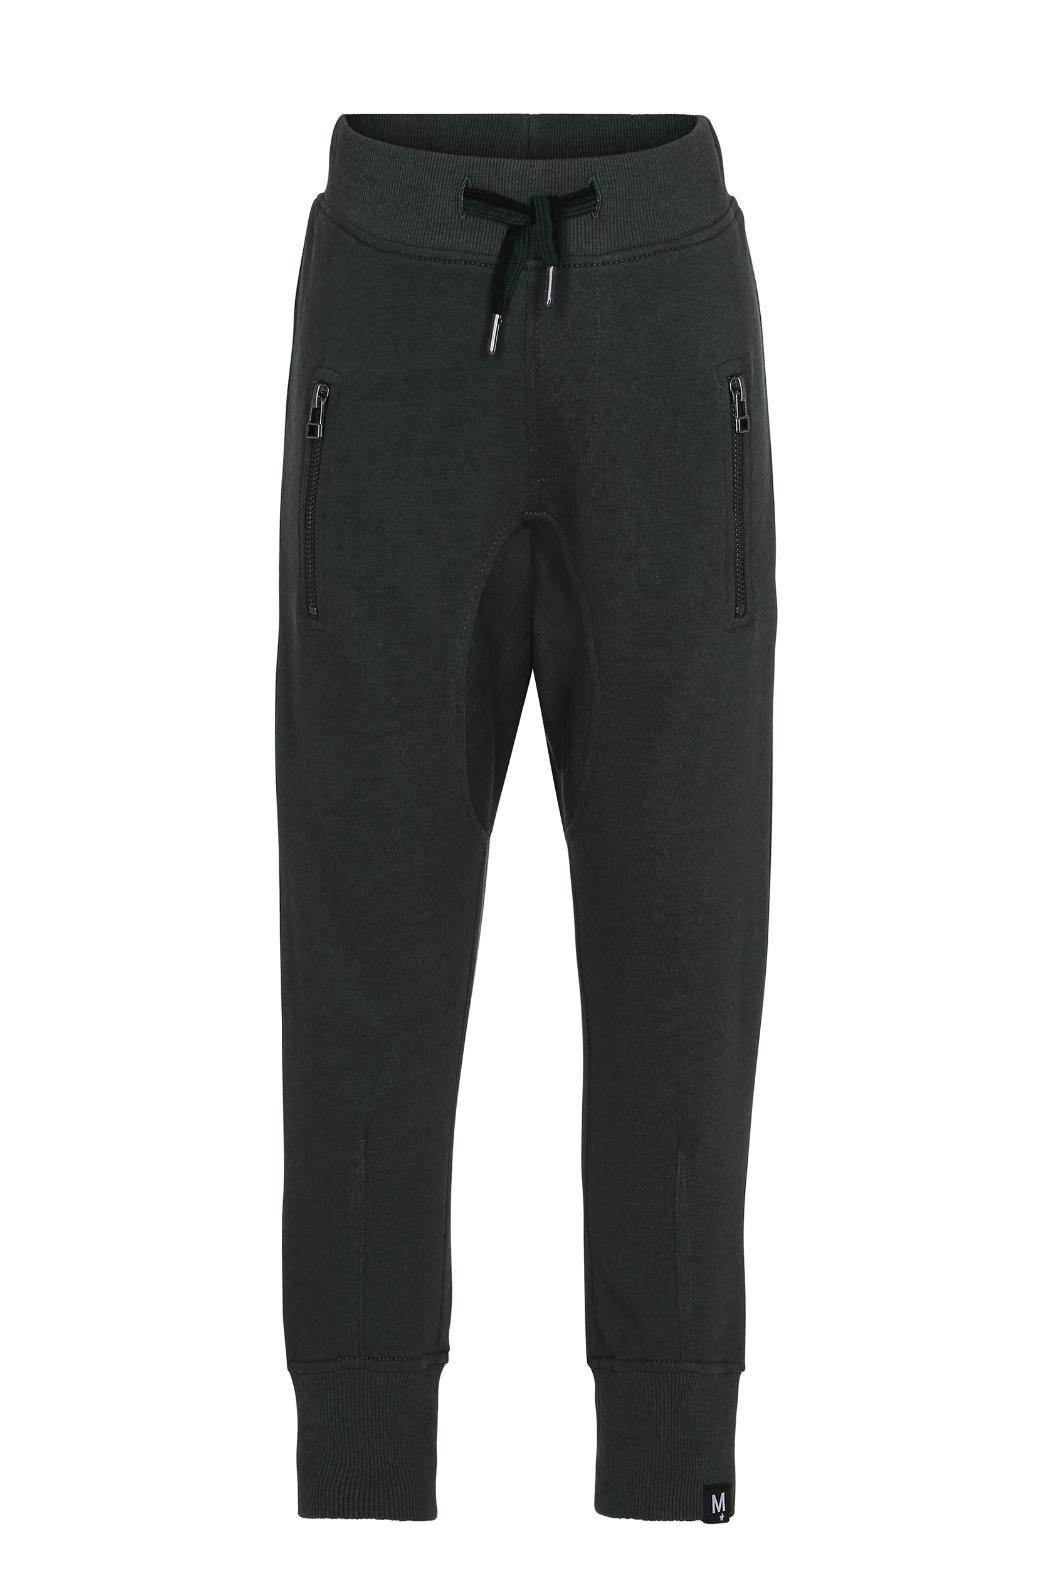 Molo Deep Forest Trousers - Main Image